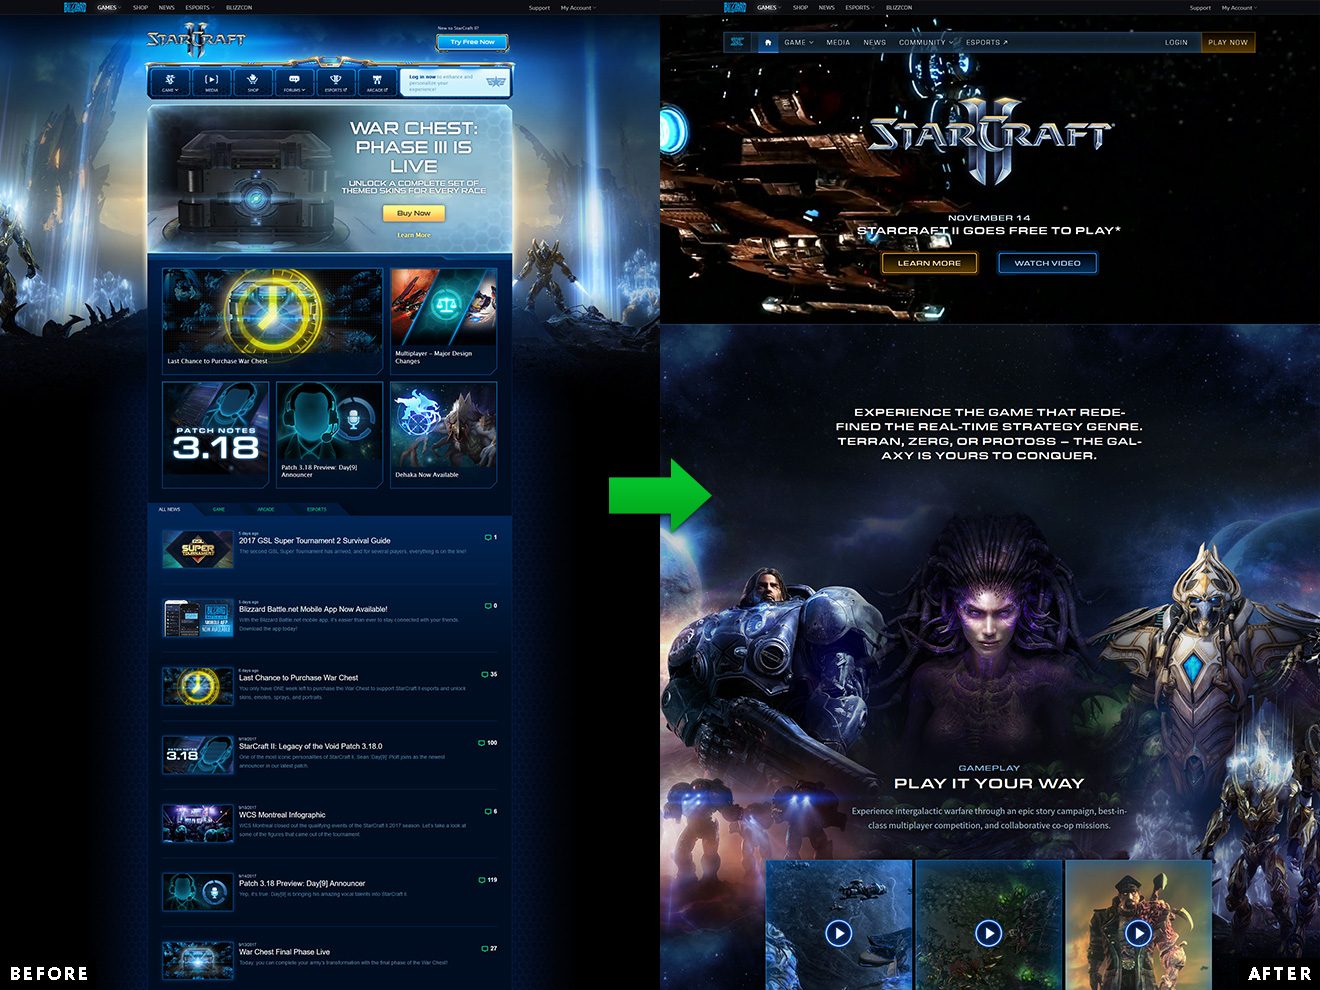 Before and after comparison for StarCraft2.com